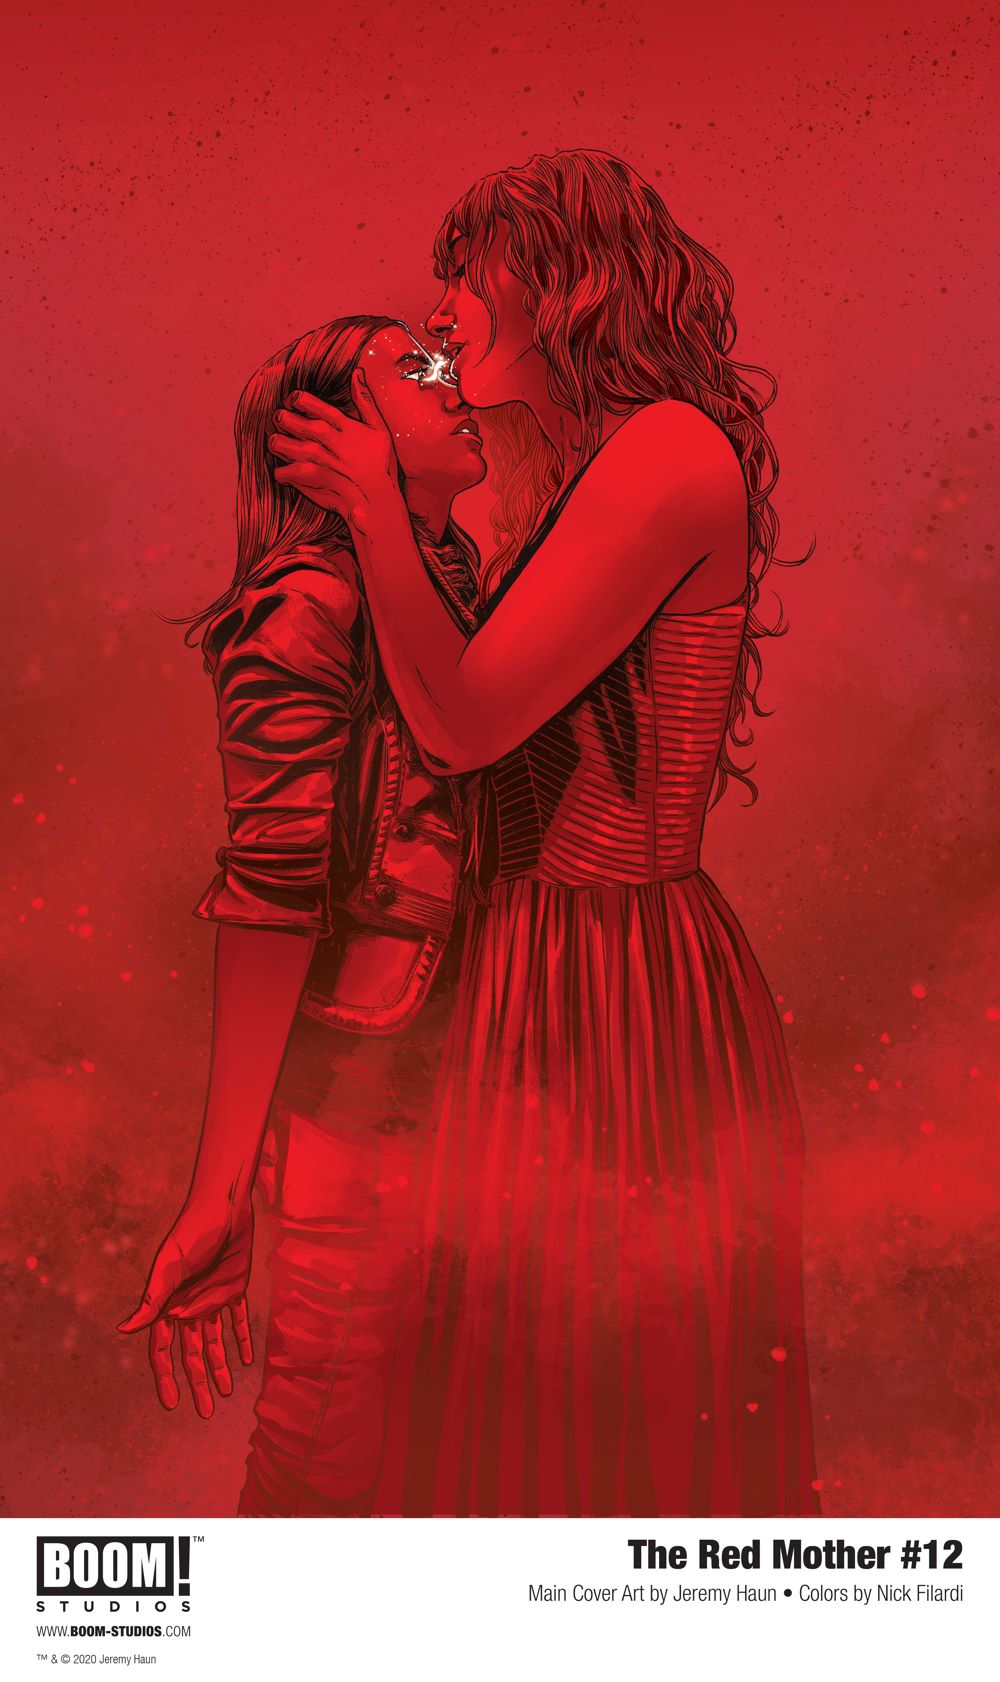 RedMother_012_Cover_Main_PROMO First Look at BOOM! Studios' THE RED MOTHER #12